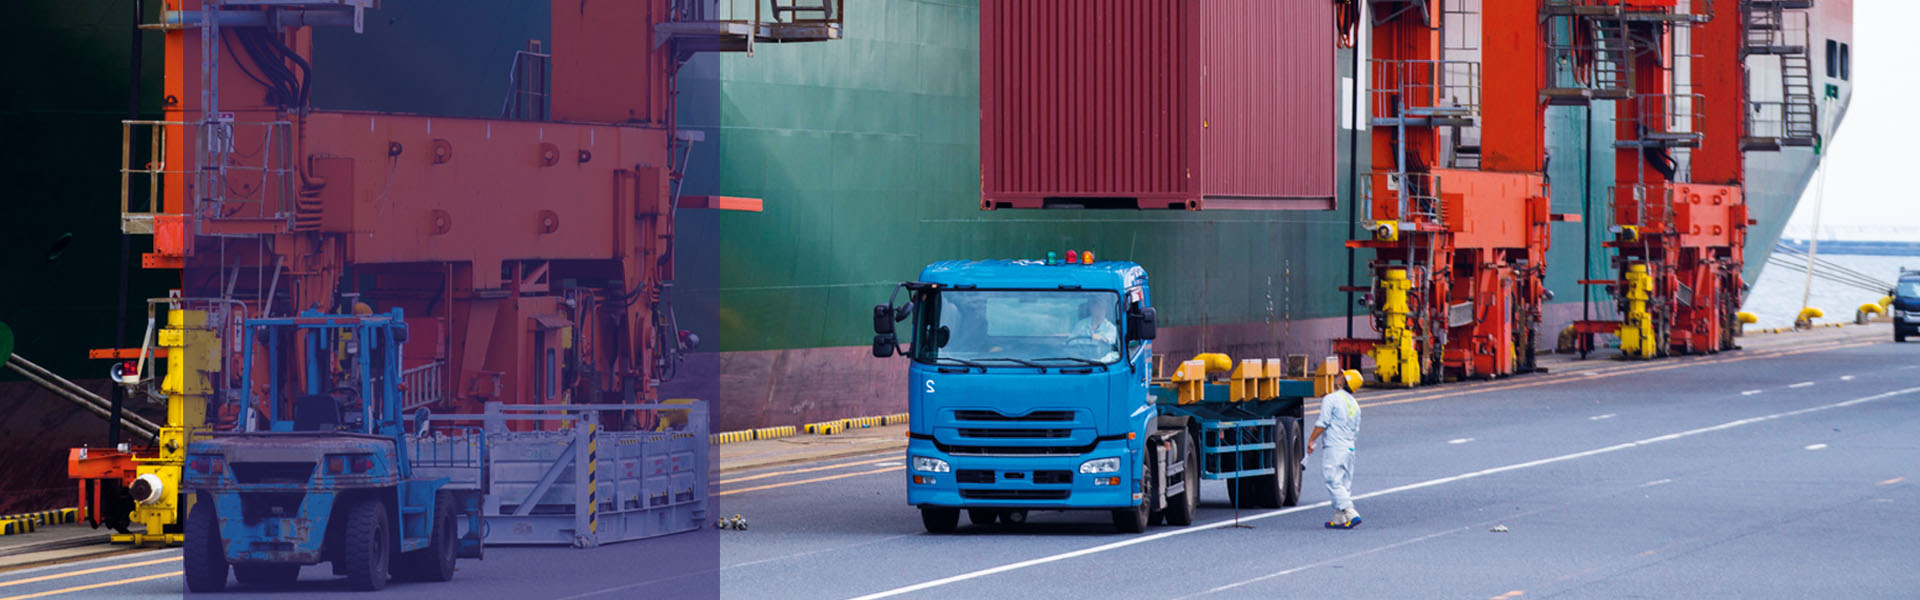 TANK CONTAINER TRANSPORT FROM/TO PORT AND RAILWAY SATIONS